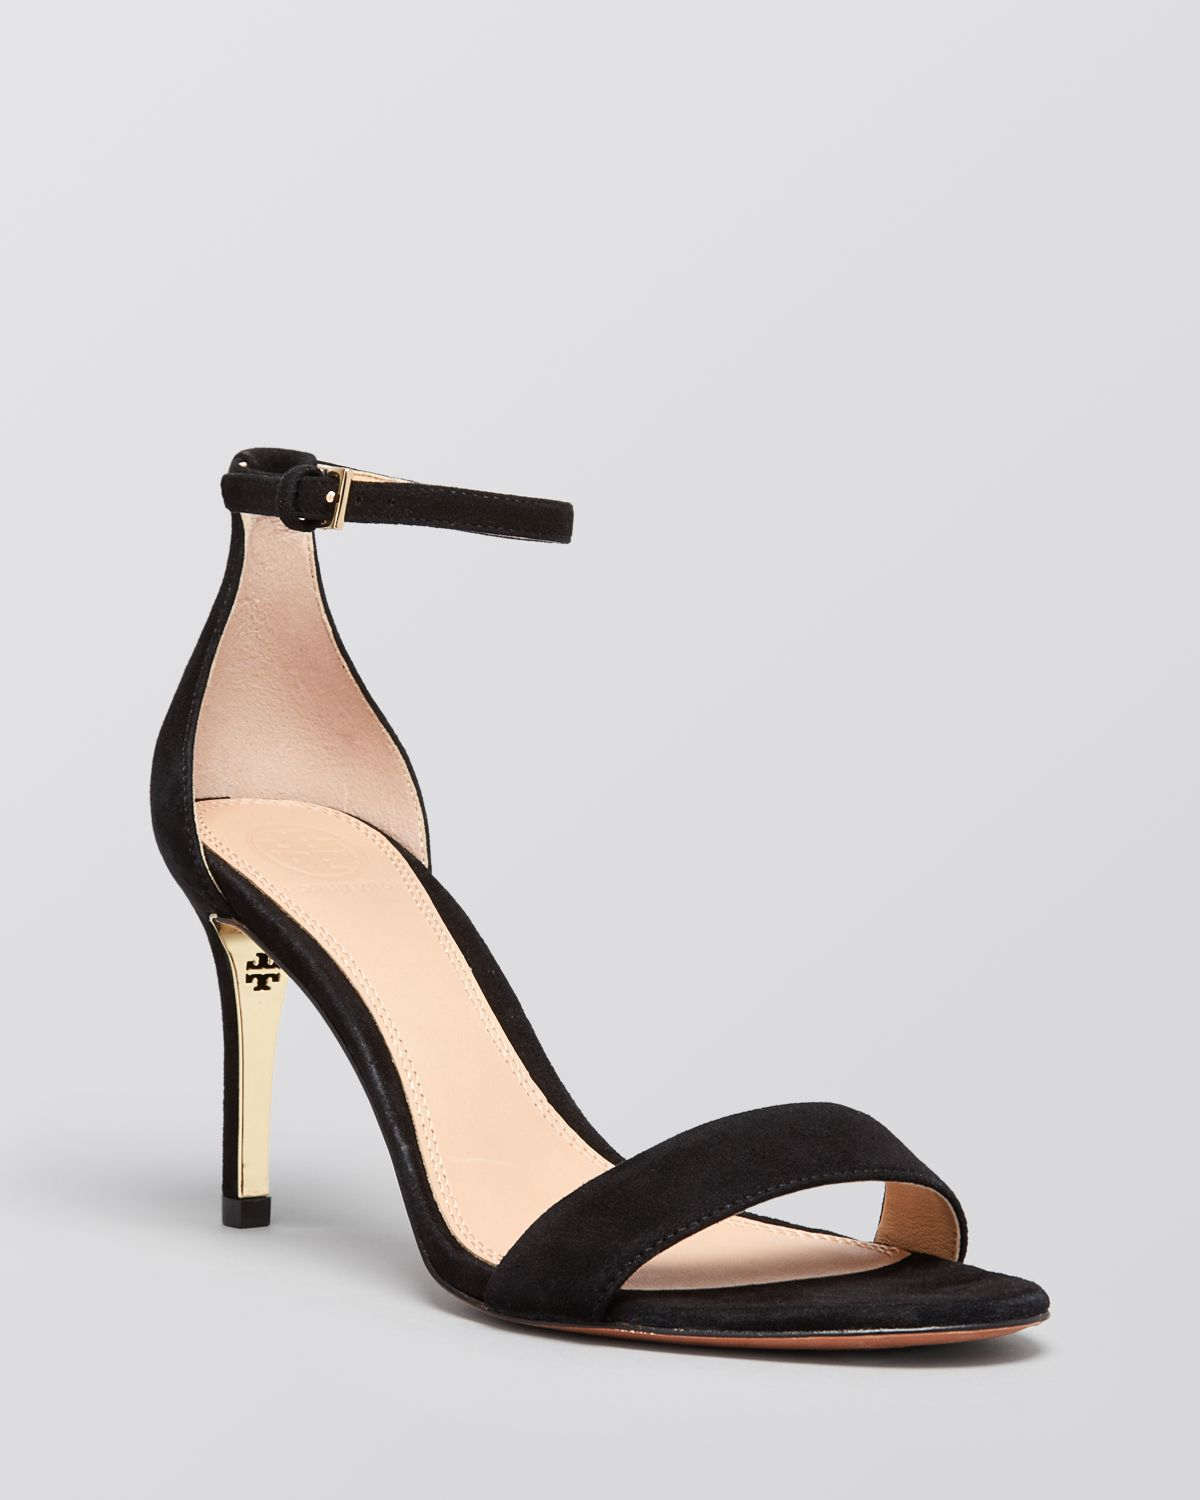 Black Sandal Heels With Ankle Strap e0Jbepgp